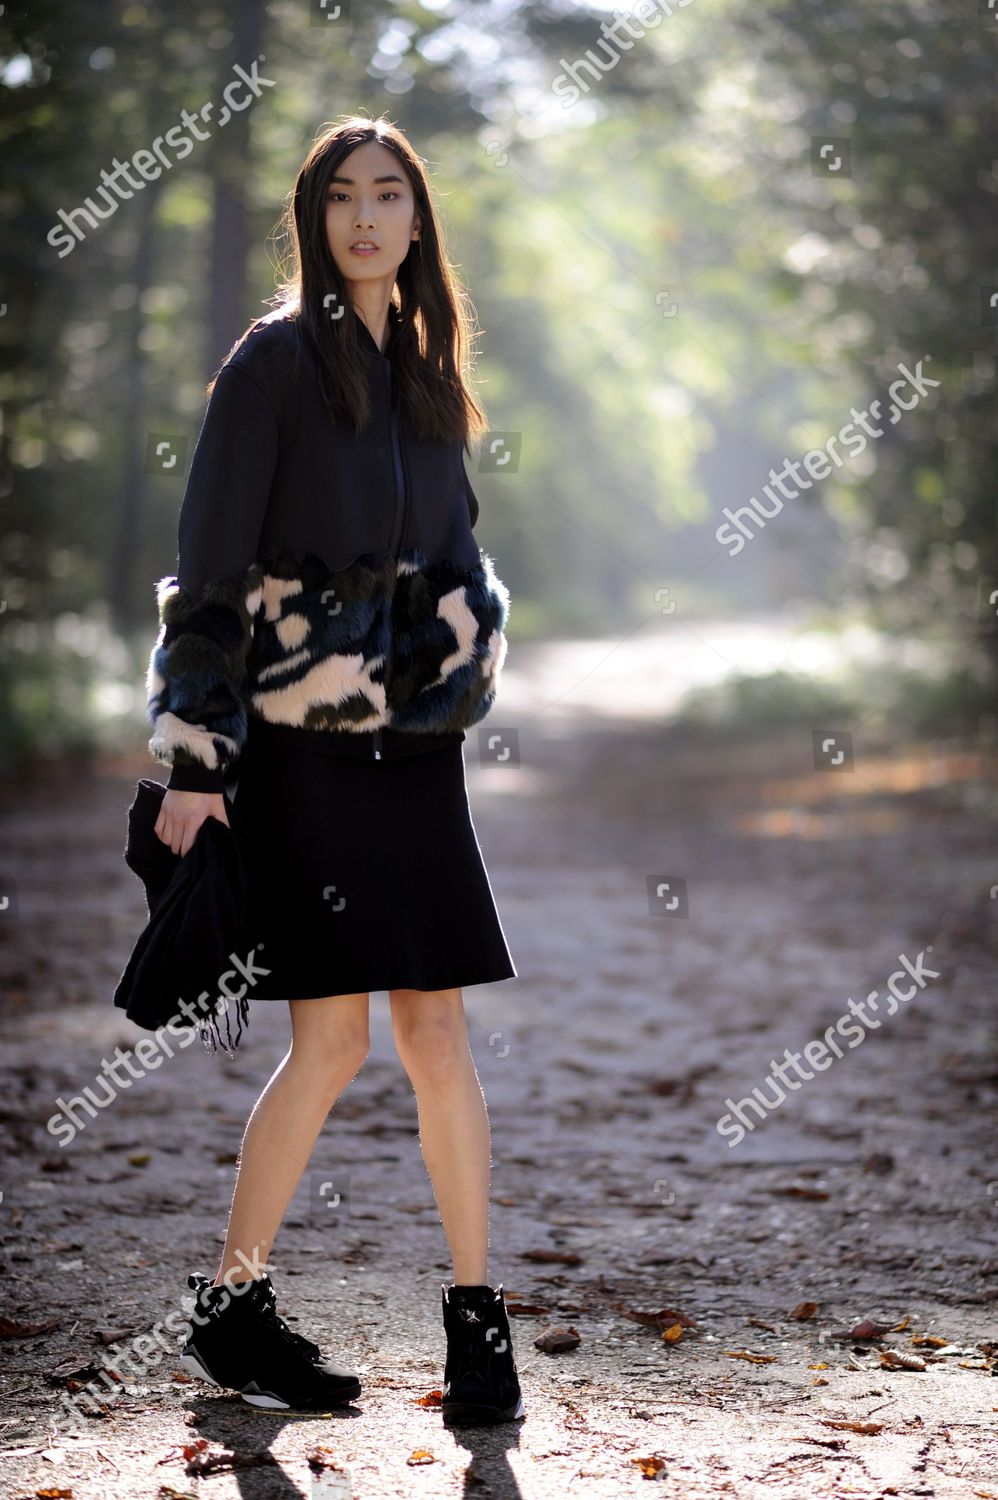 d870f5730 Stock photo of Street Style, Spring Summer 2015, Paris Fashion Week, France  -